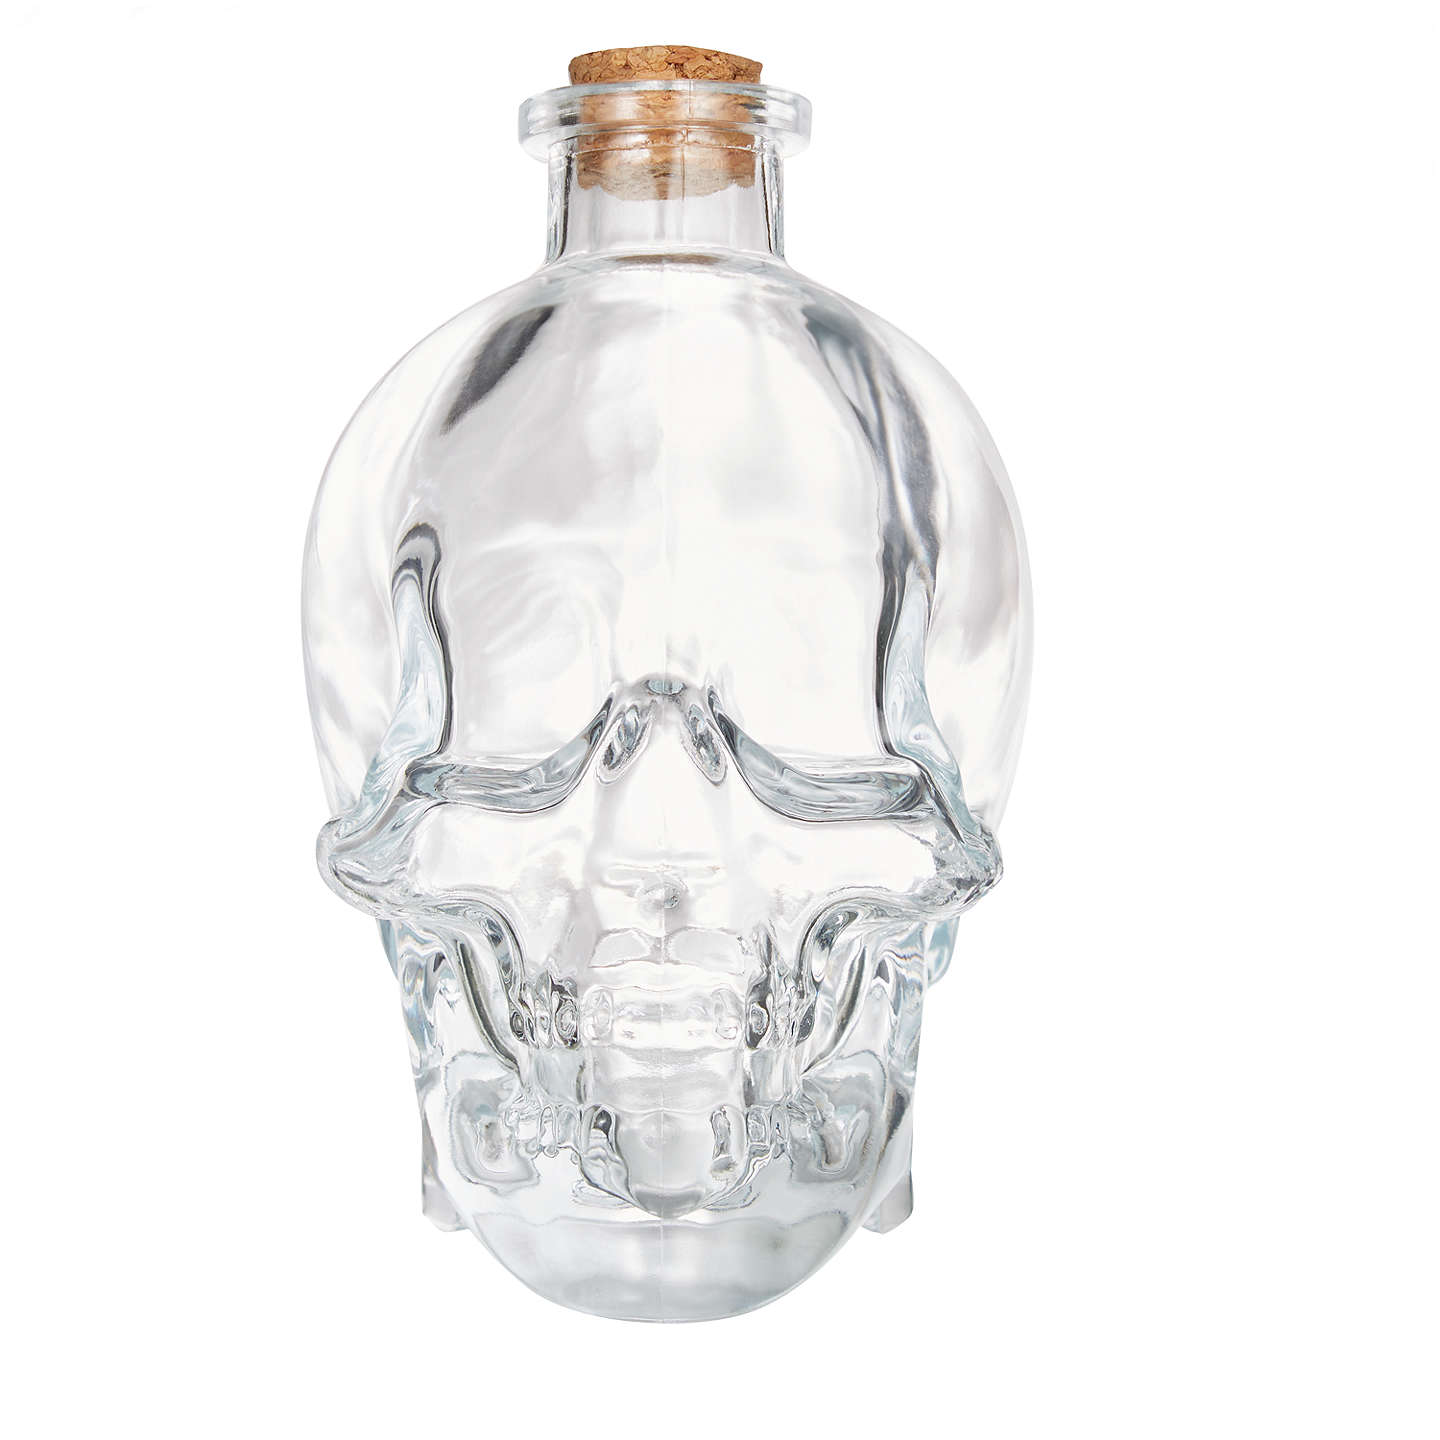 BuyJohn Lewis Large Halloween Glass Skull With Cork Online at johnlewis.com